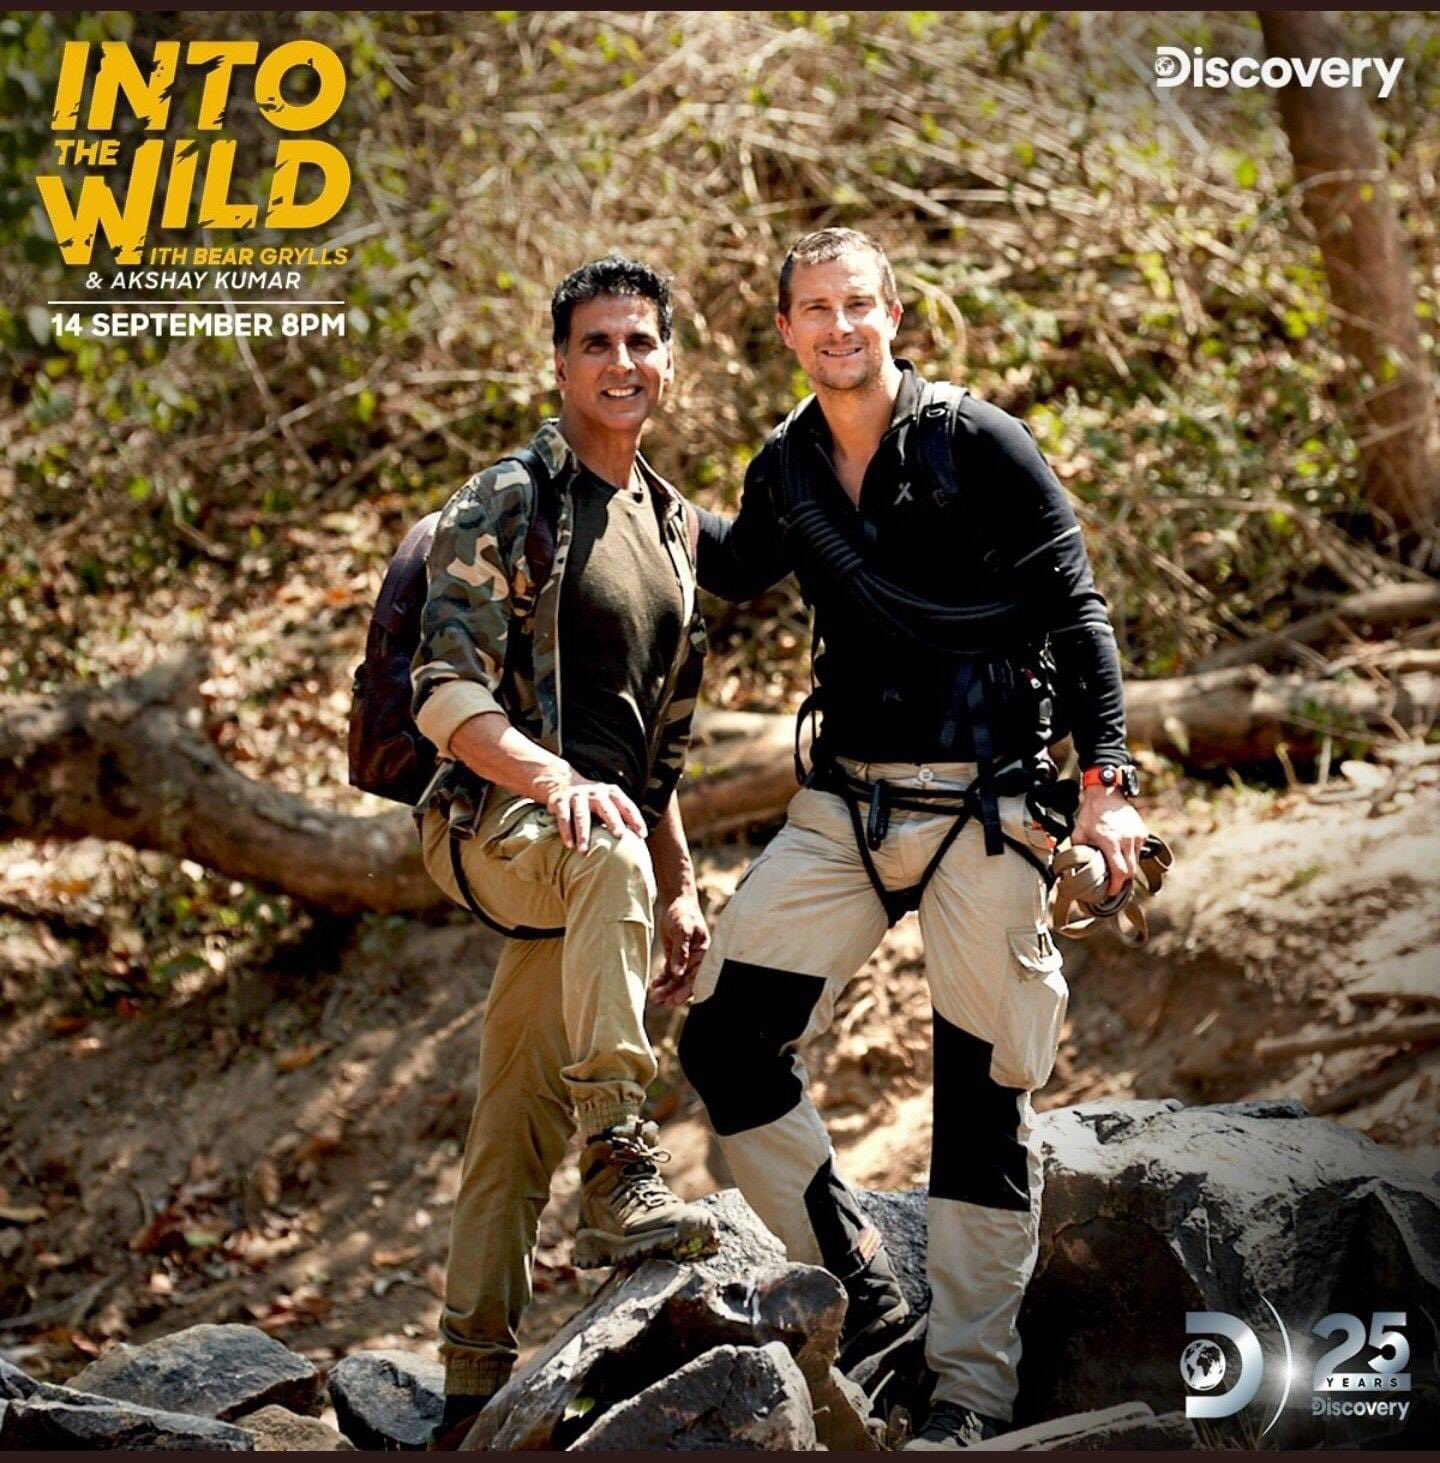 Into The Wild with Bear Grylls & Akshay Kumar (2020) S01E01 Hindi Malti Audio 242MB HDRip ESubs Download